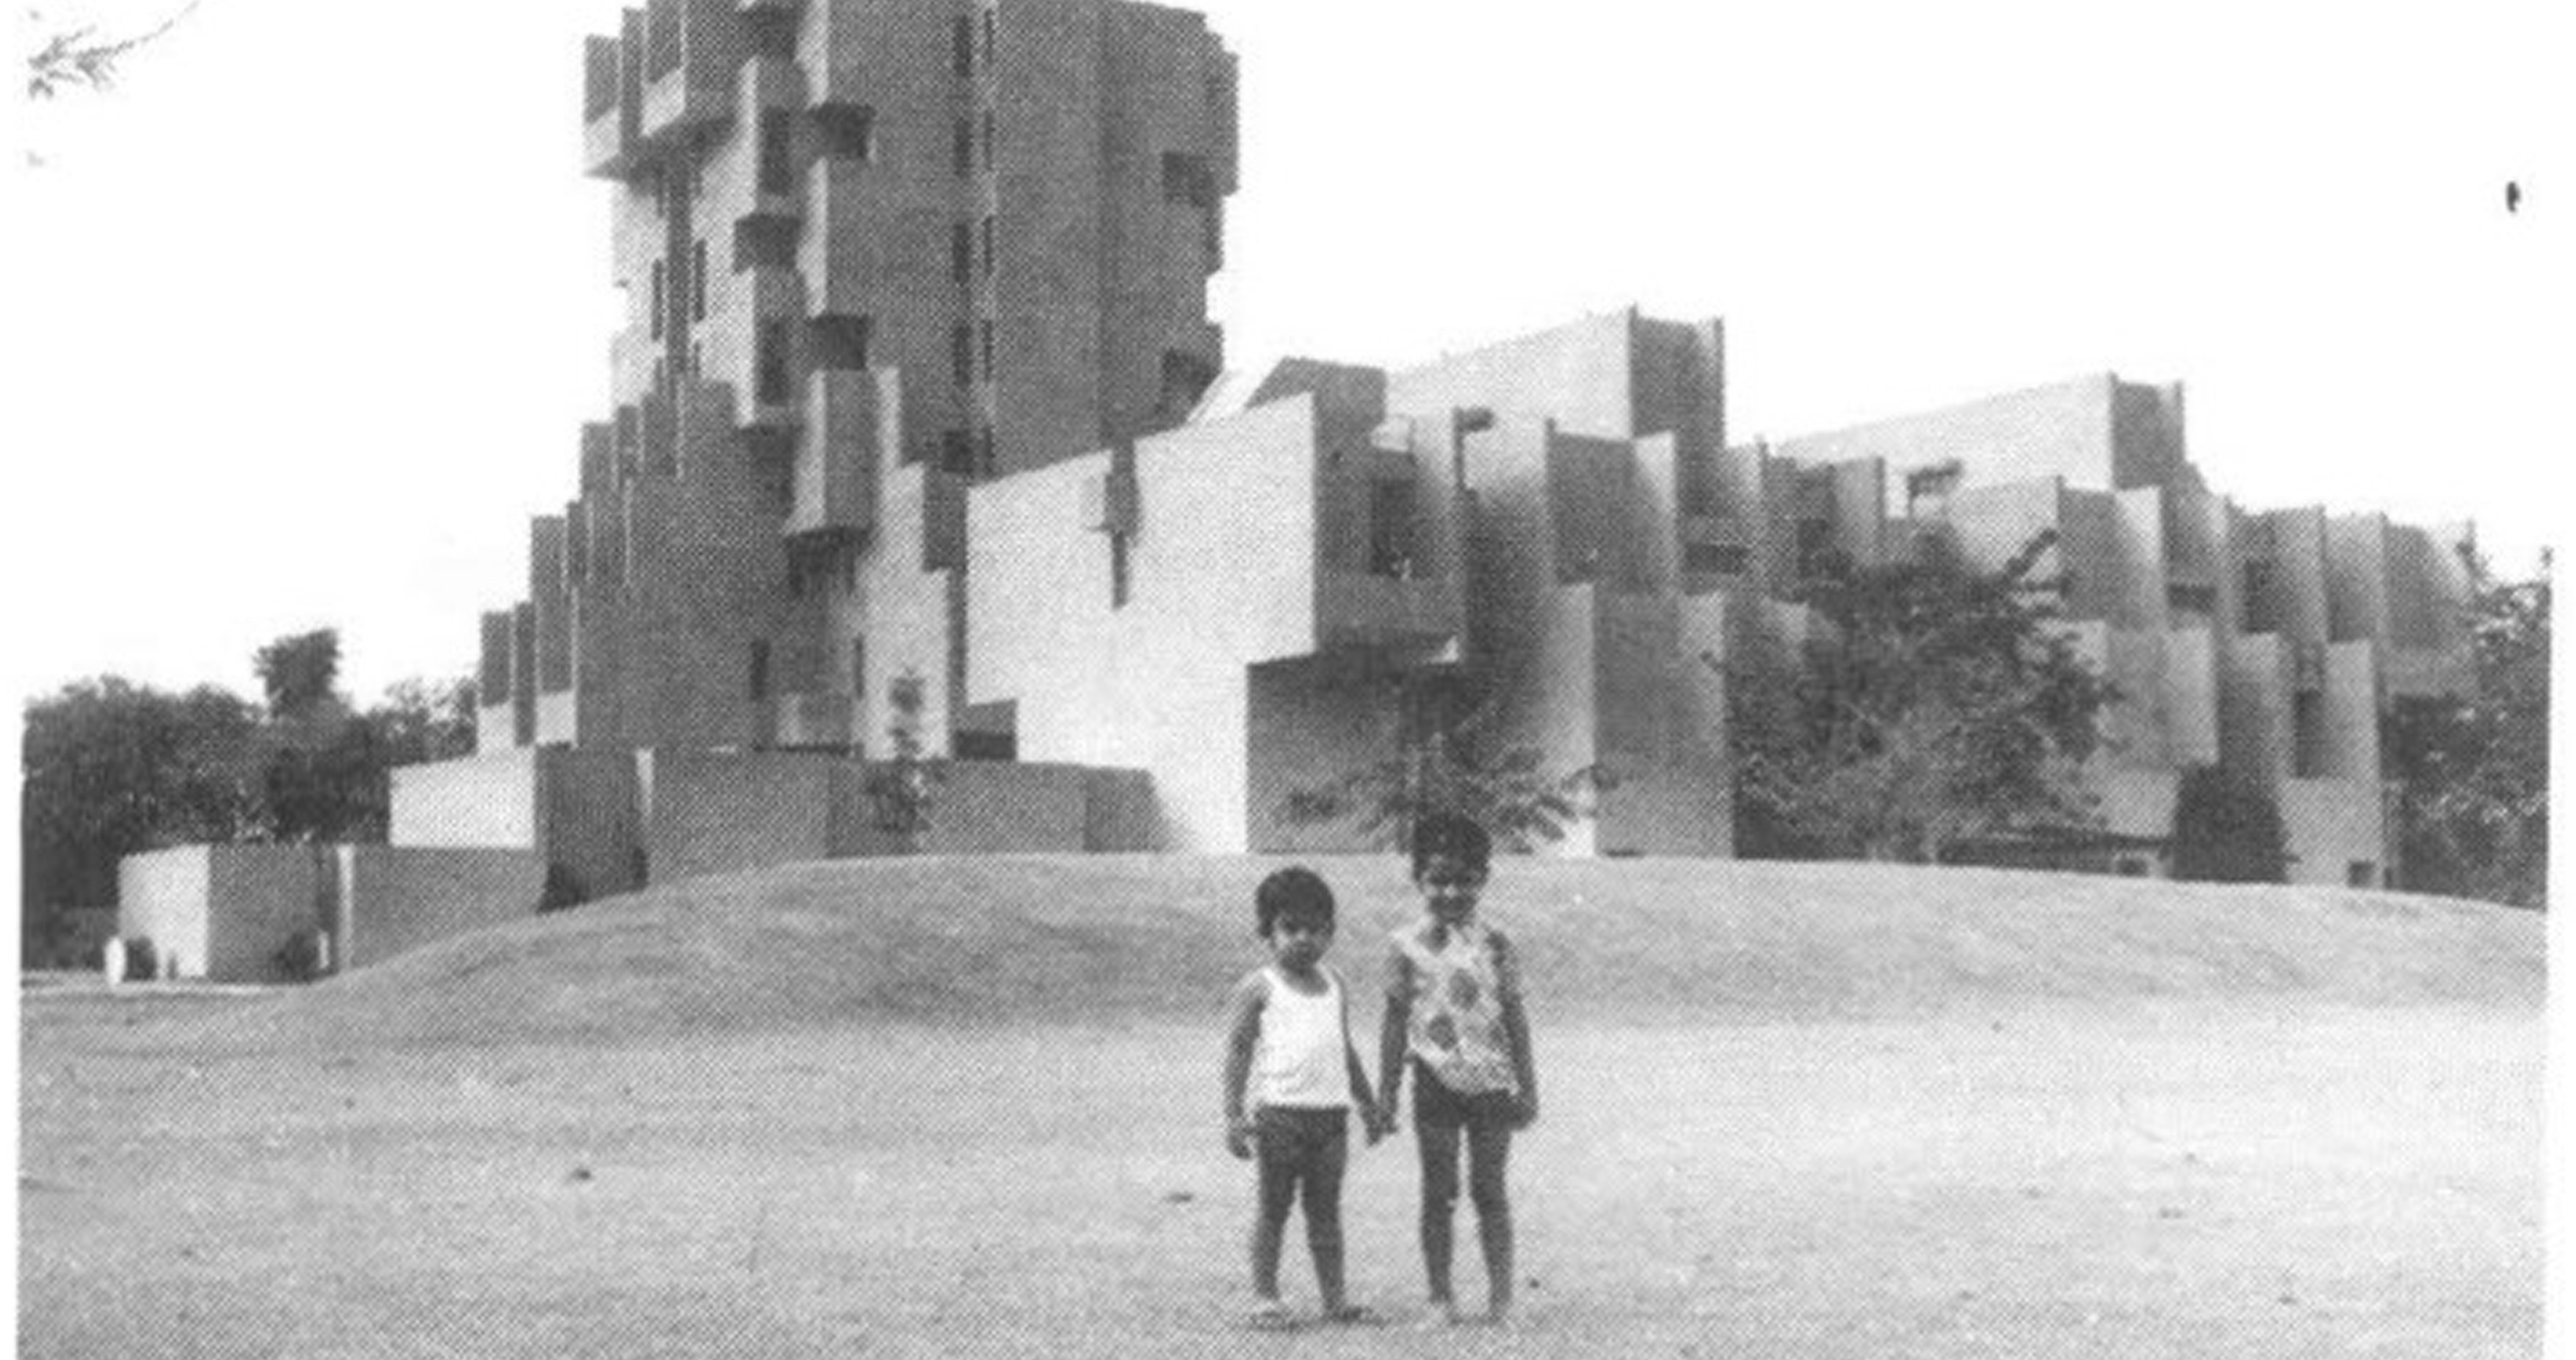 A journey of 100 years of Architecture in India | Part 02 - 1971-1973-Hostel-Tower-National-Dairy-Development-Board-Anand